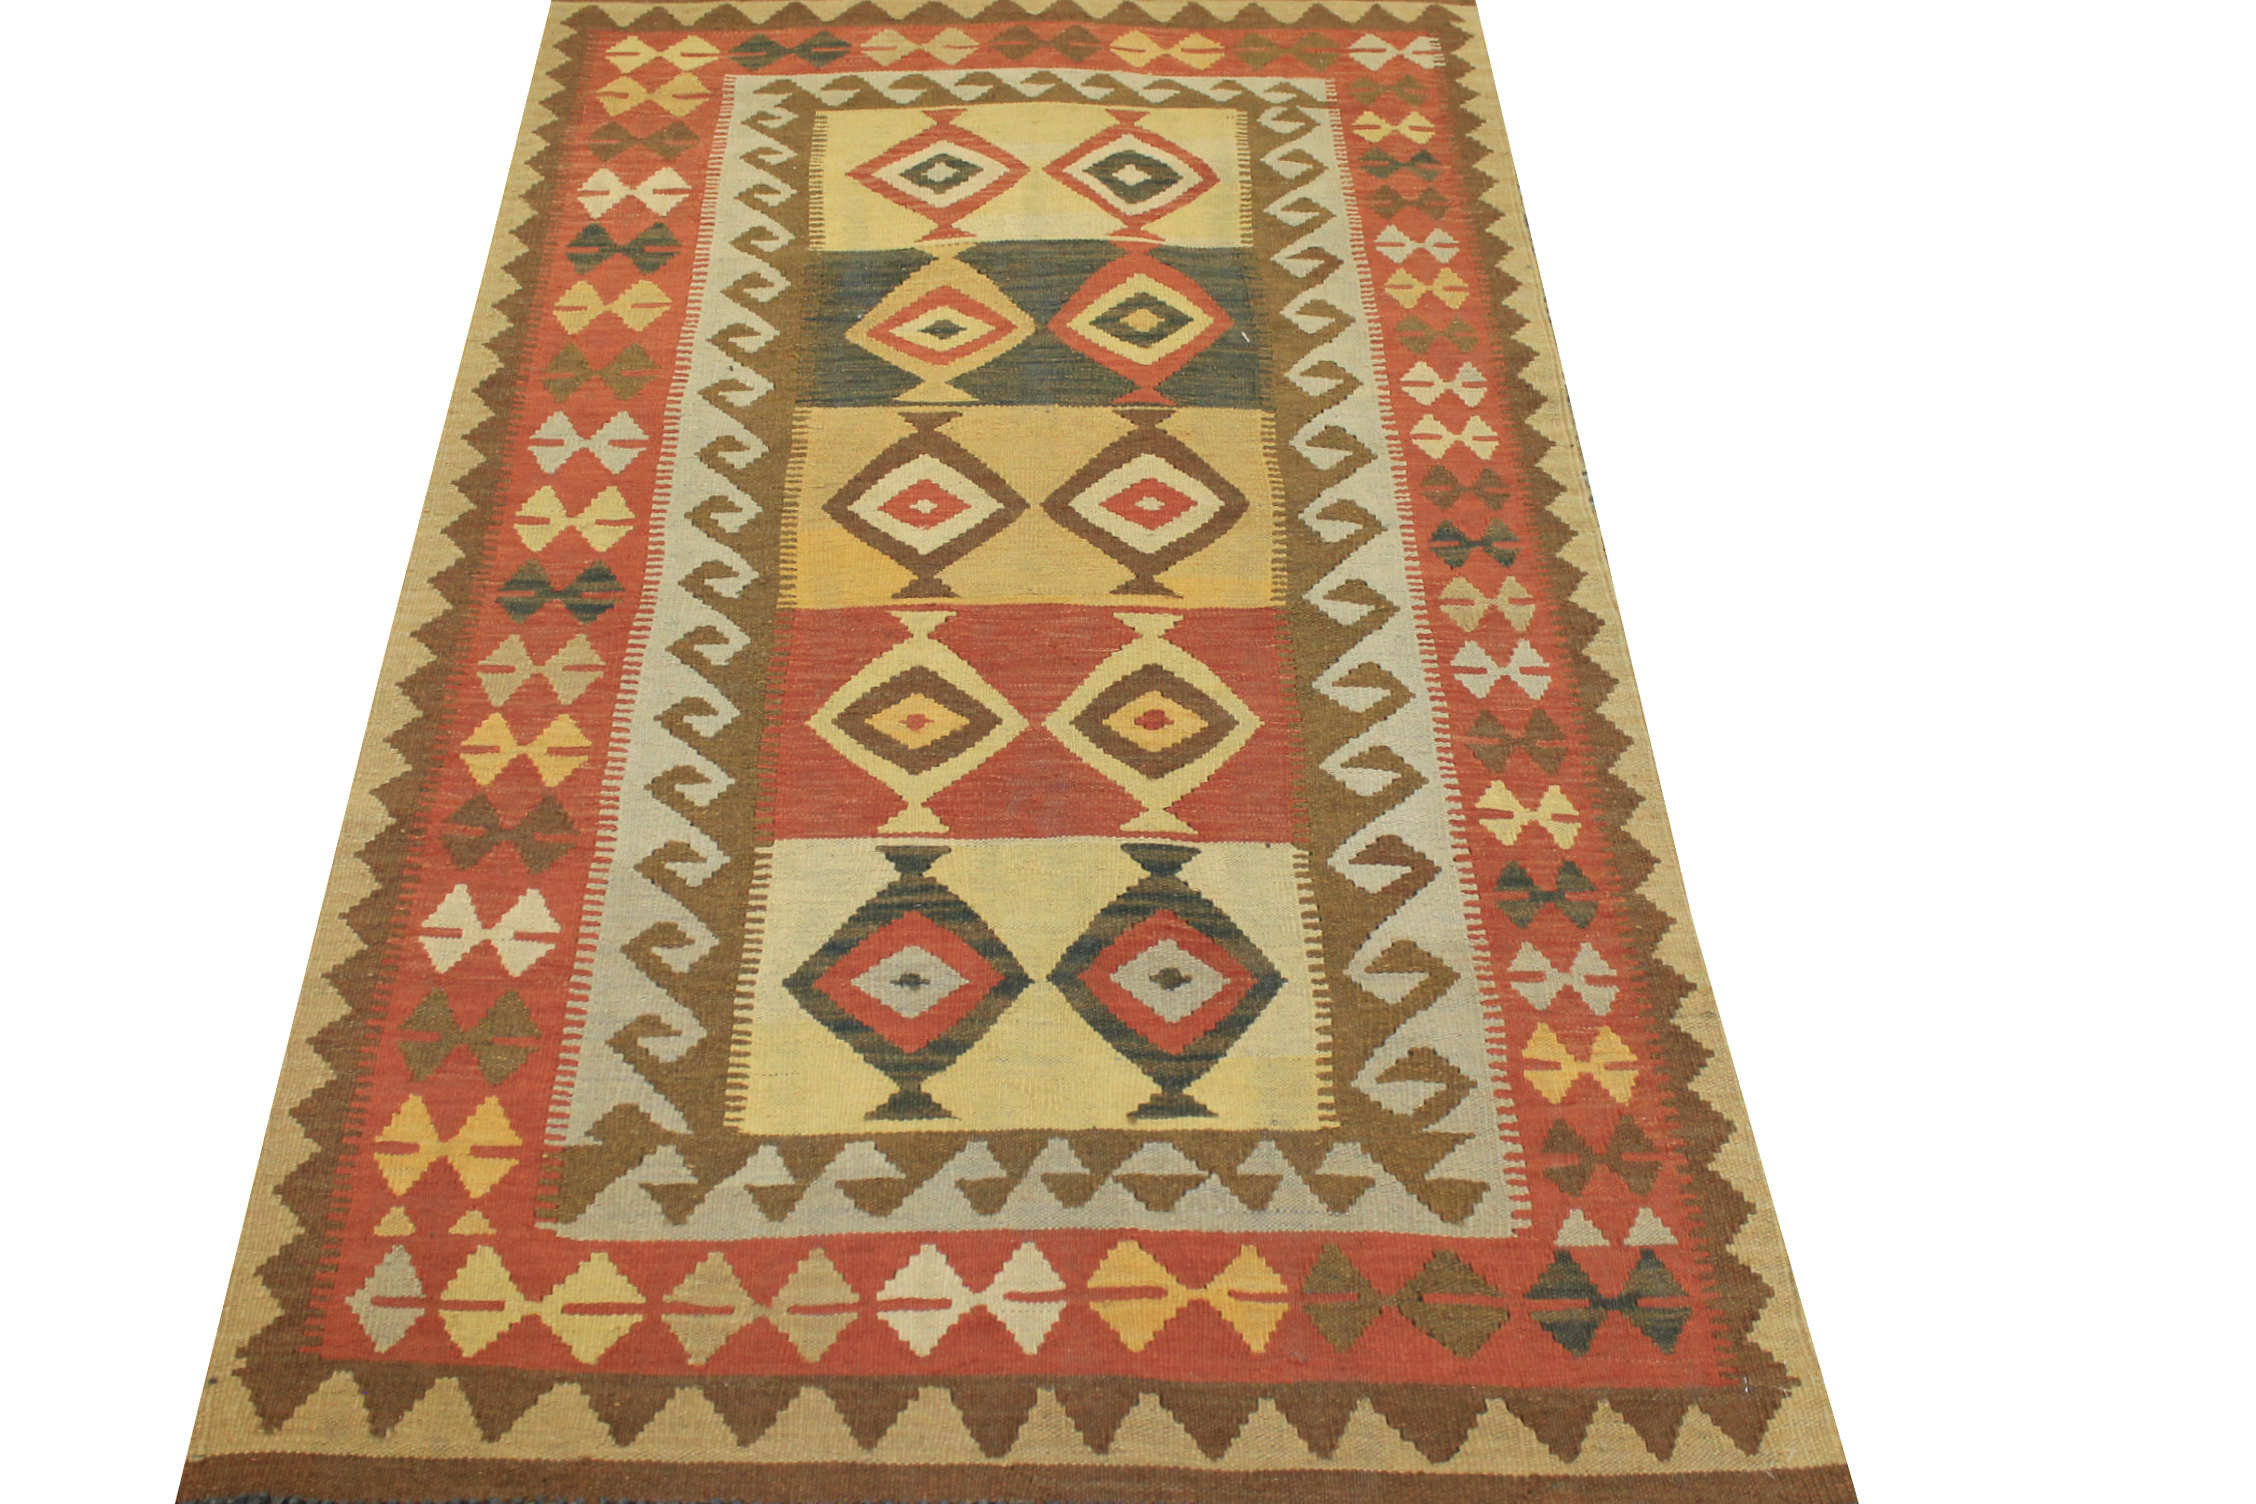 4x6 Flat Weave Hand Knotted Wool Area Rug - MR13326